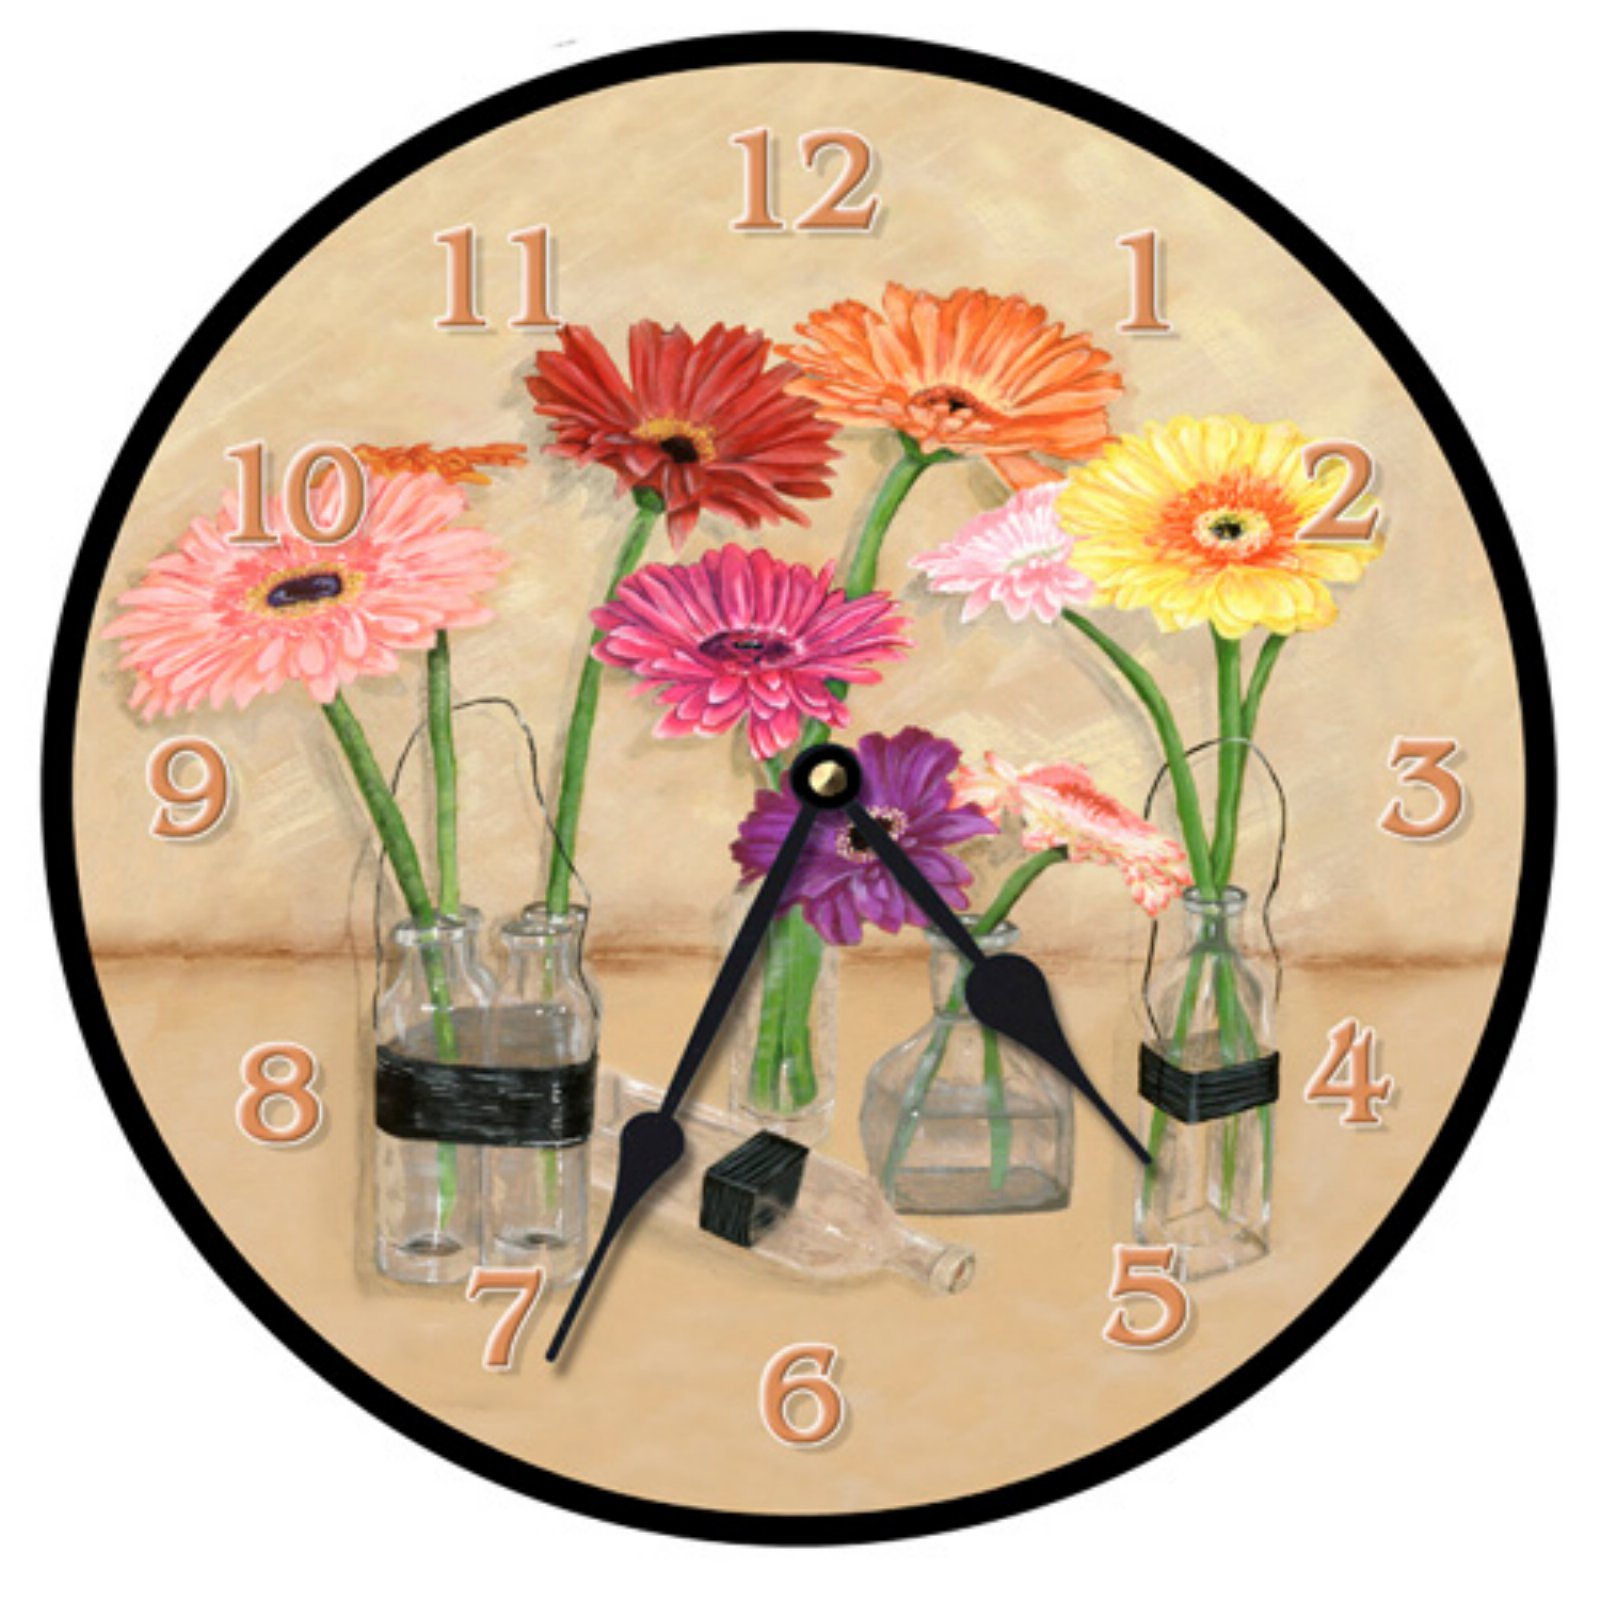 Lexington Studios Gerber Bottles Wall Clock